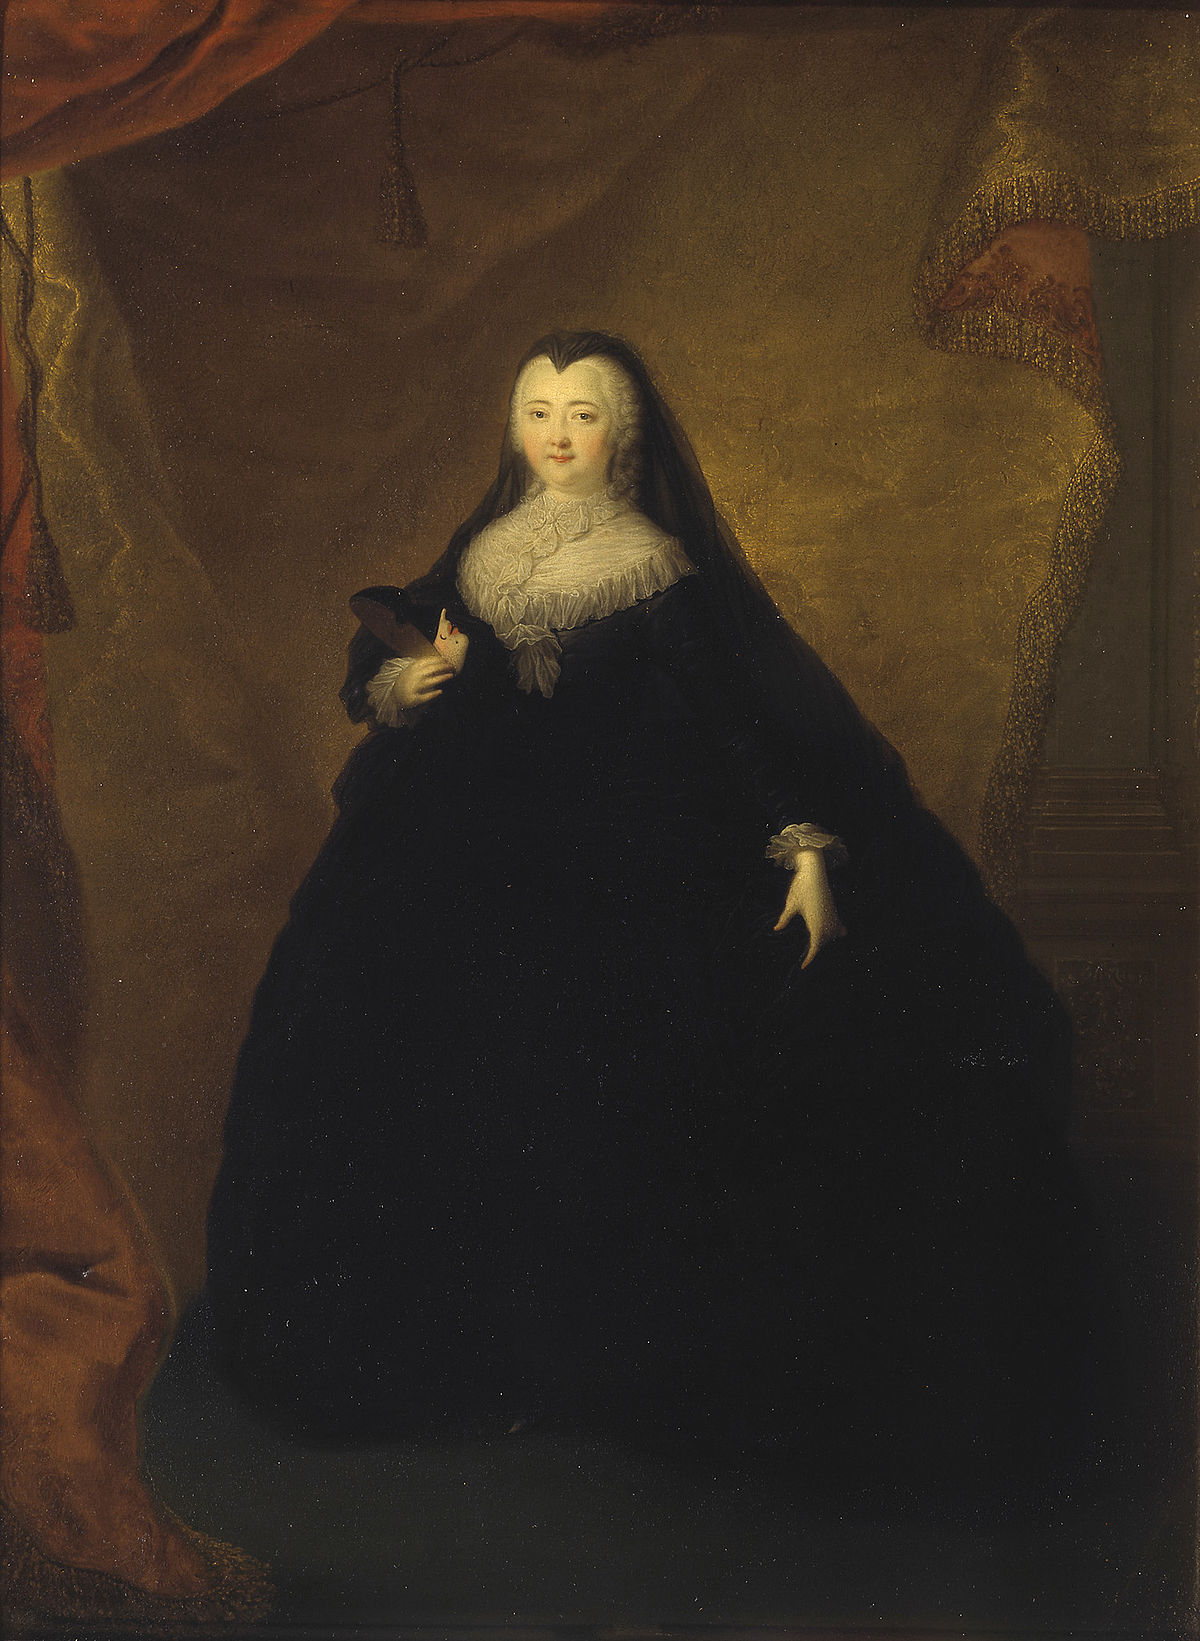 Elizabeth of Russia in masquerade dress by Grooth (1748, Tretyakov gallery).jpg